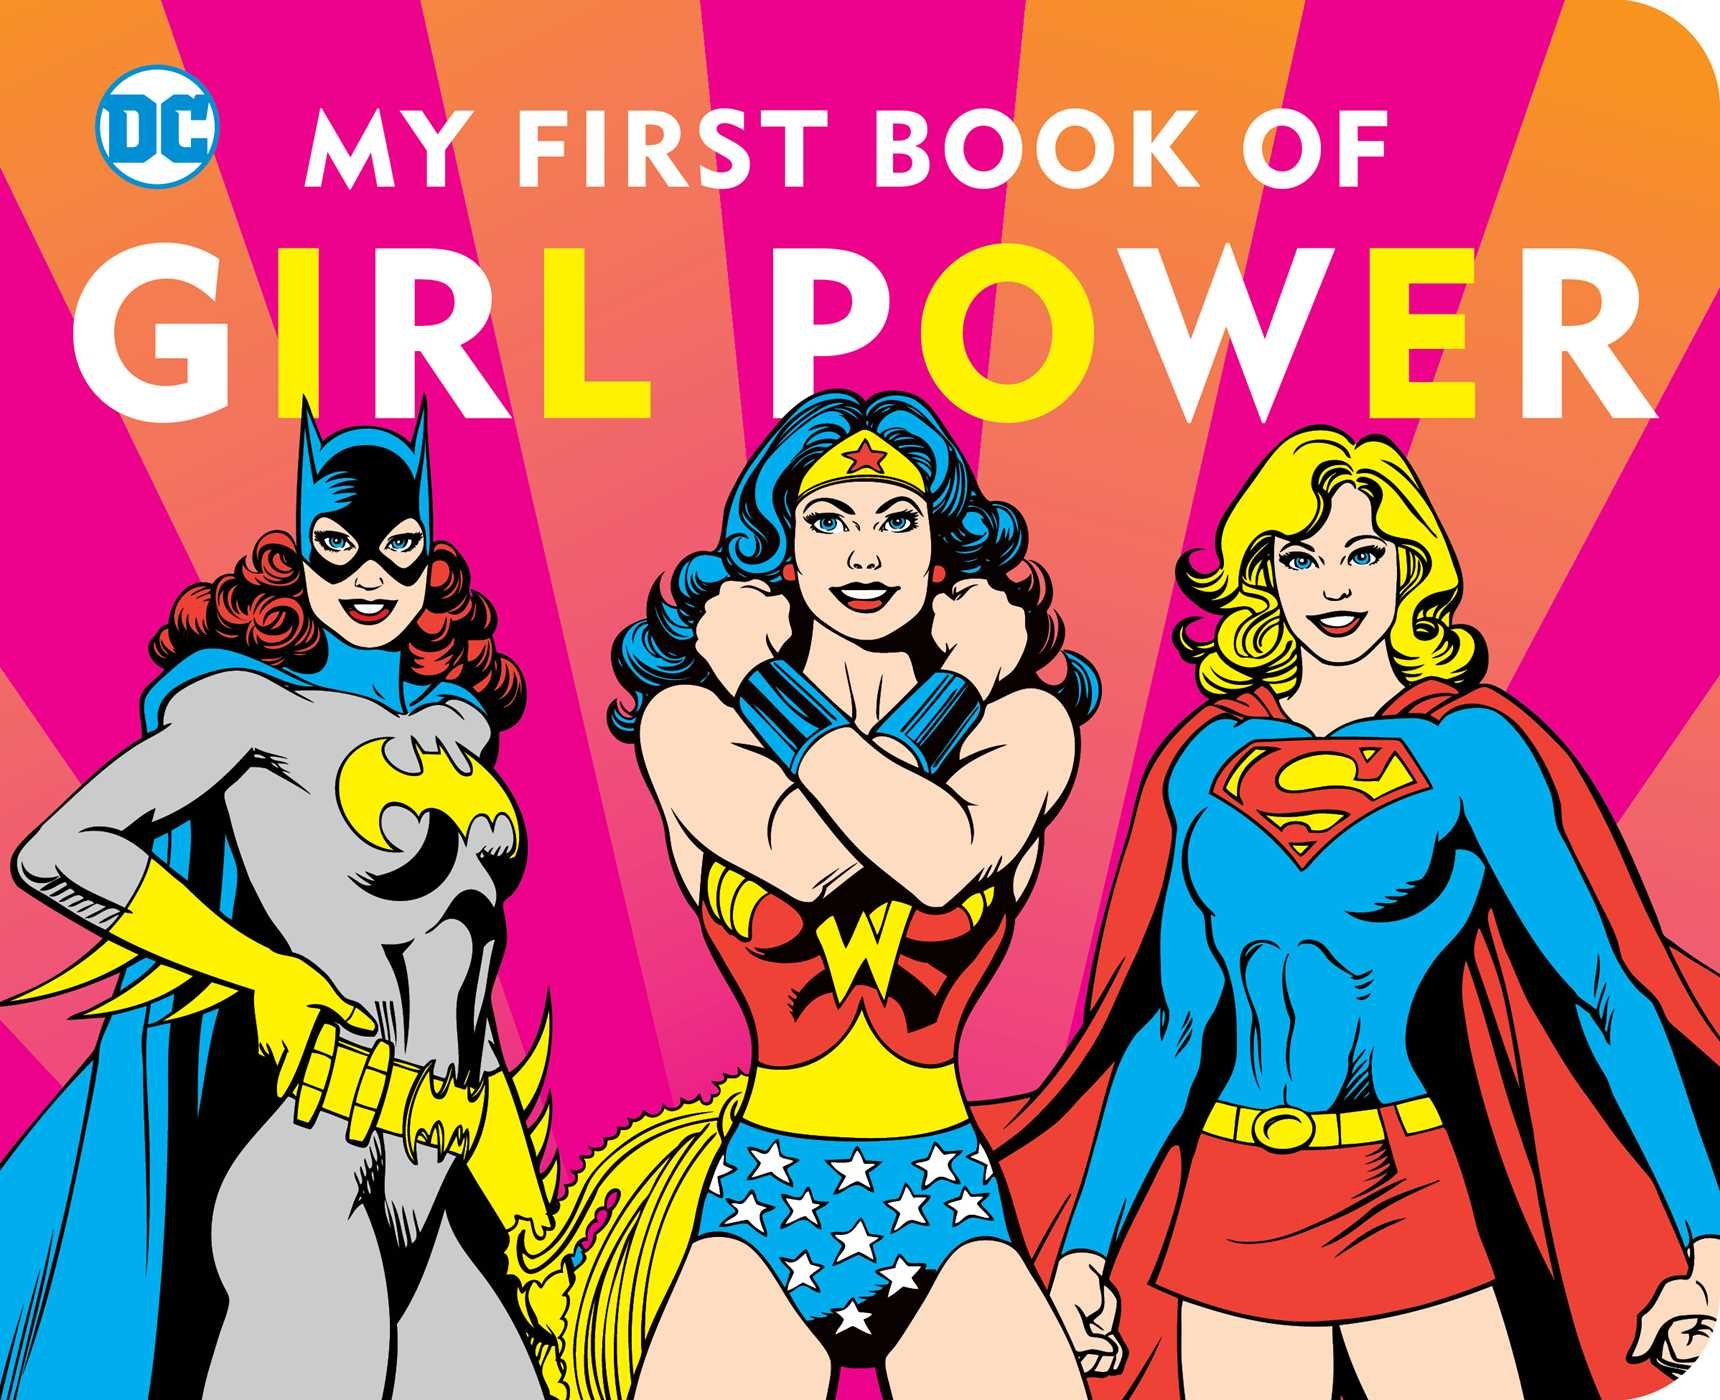 17. My First Book of Girl Power - The book features beloved DC characters like Hawkgirl, Katana, & Raven as well as the ever popular Wonder Woman, Bat Girl & Supergirl. Comic books can be very complex, but this keeps it simple. This book empowers girls with good values & uplifting messages of friendship and female strength.